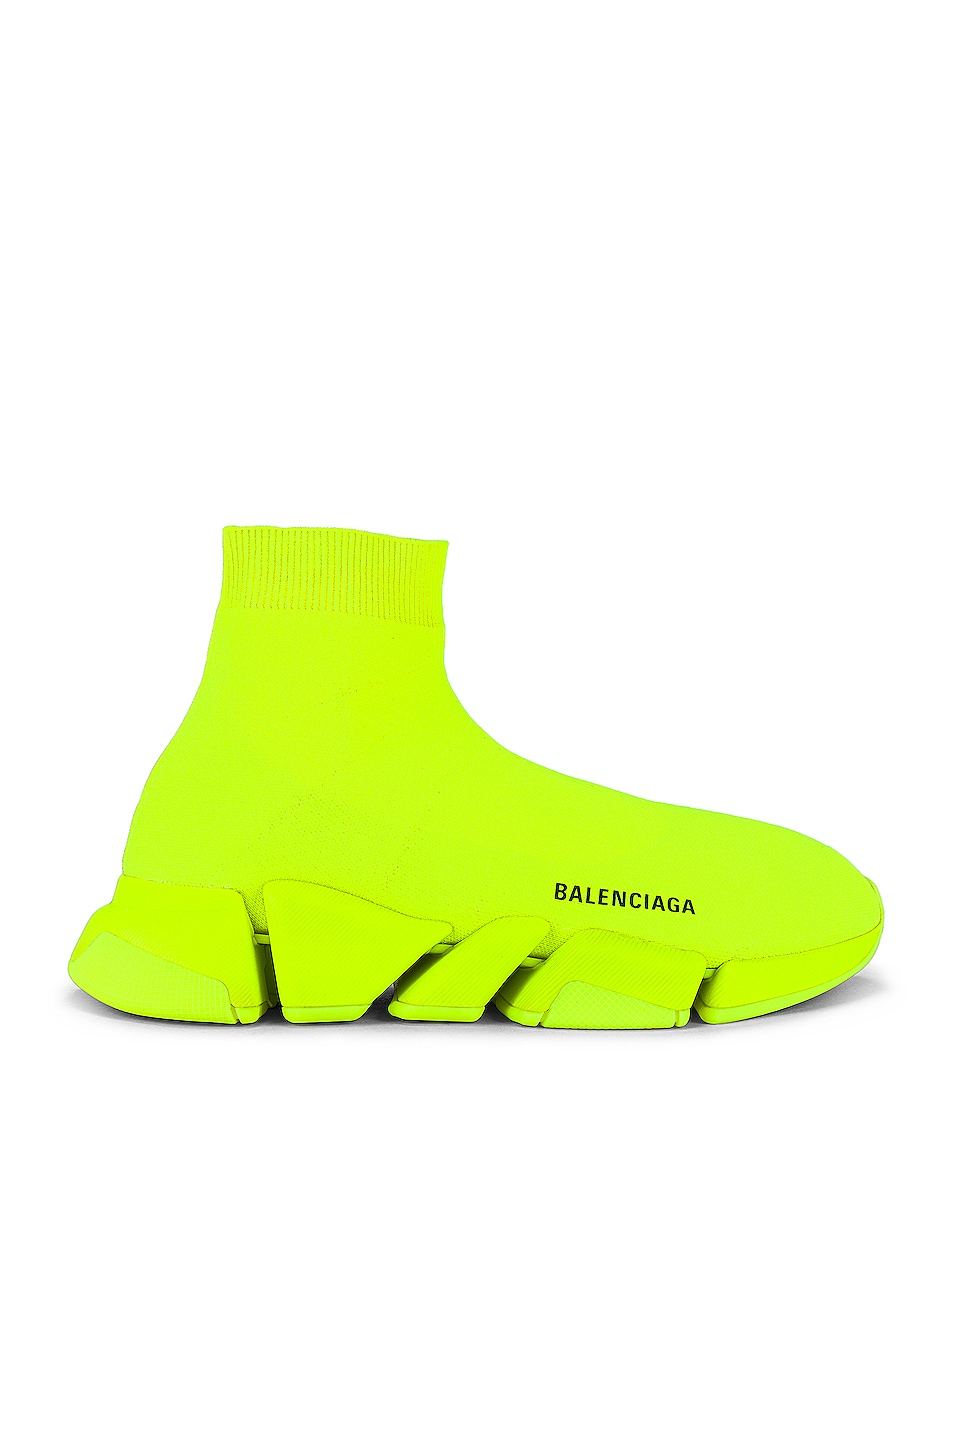 Image 1 of Balenciaga Speed Lt 2.0 in Fluo Yellow